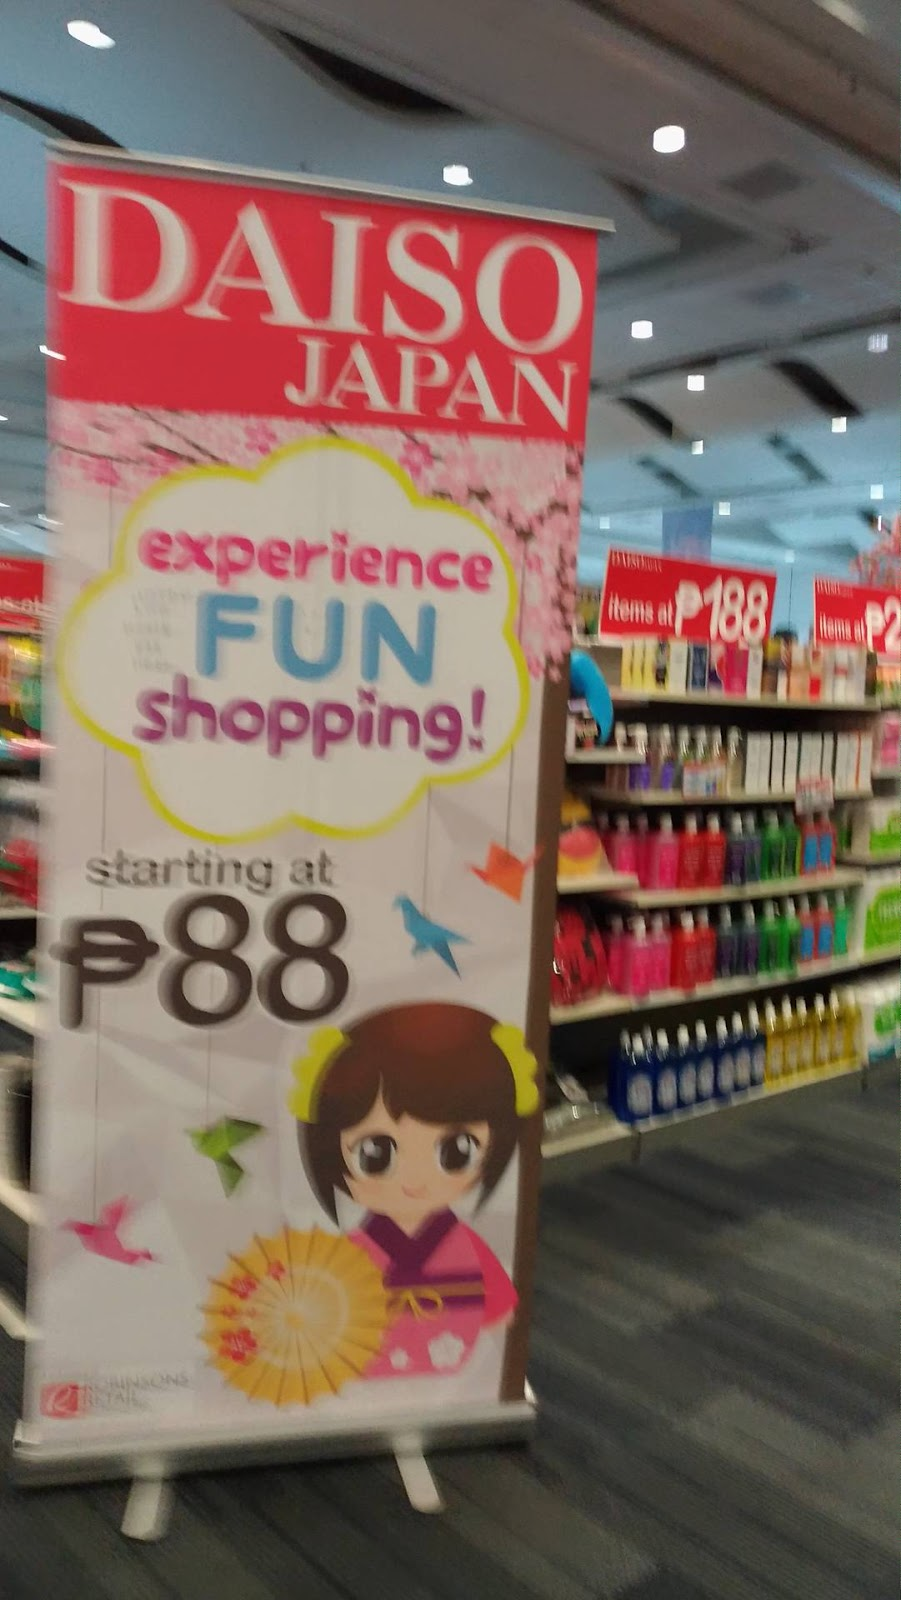 Japan home philippines products pictures.